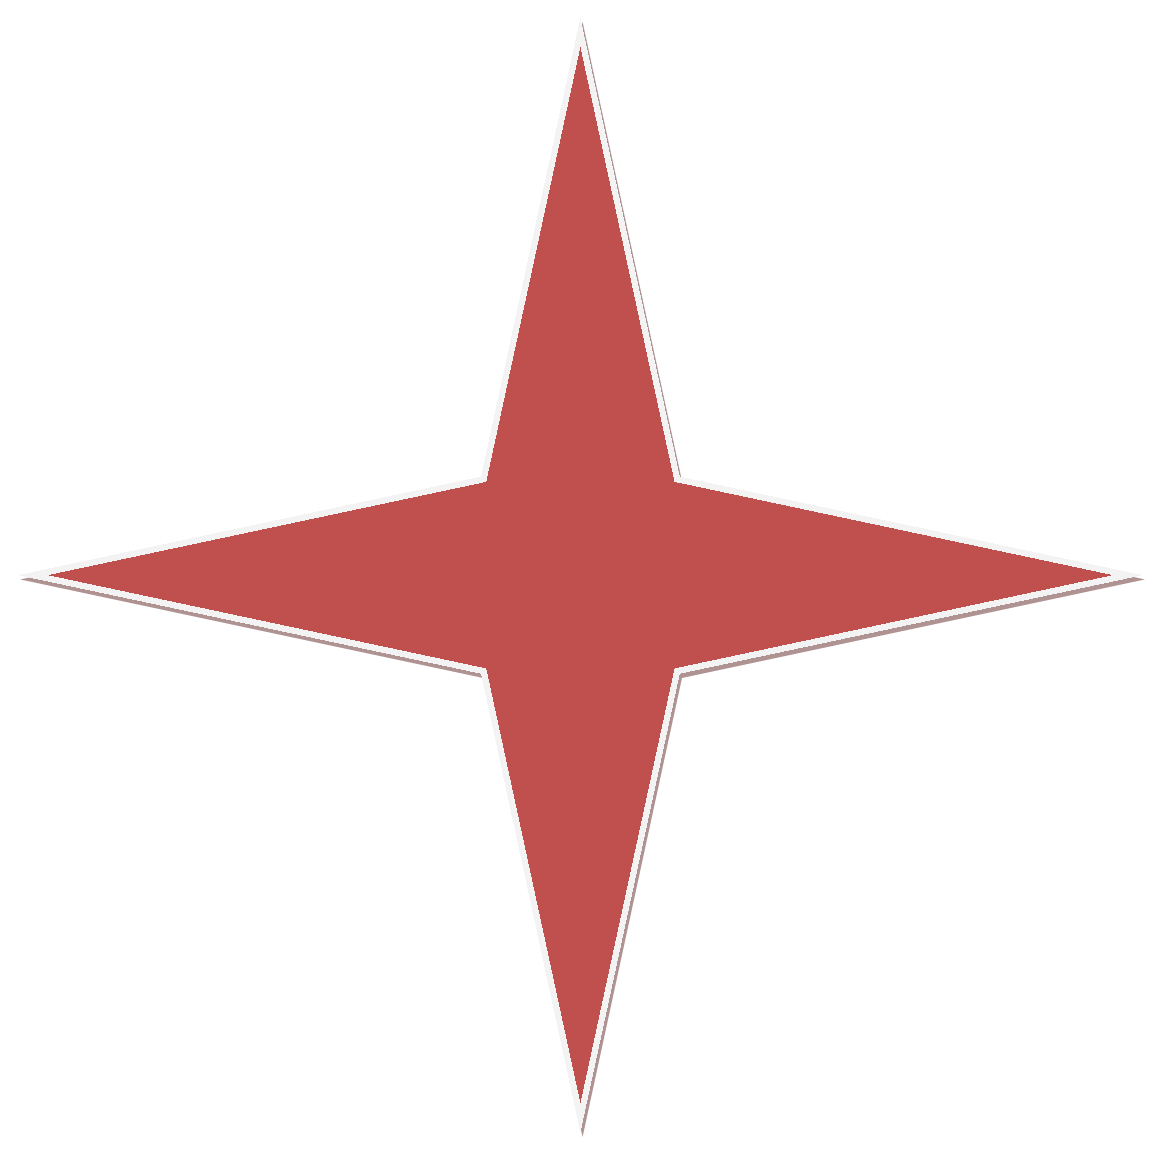 The Red Point Star Logo - File:Red 4 Point Star.png - Wikimedia Commons